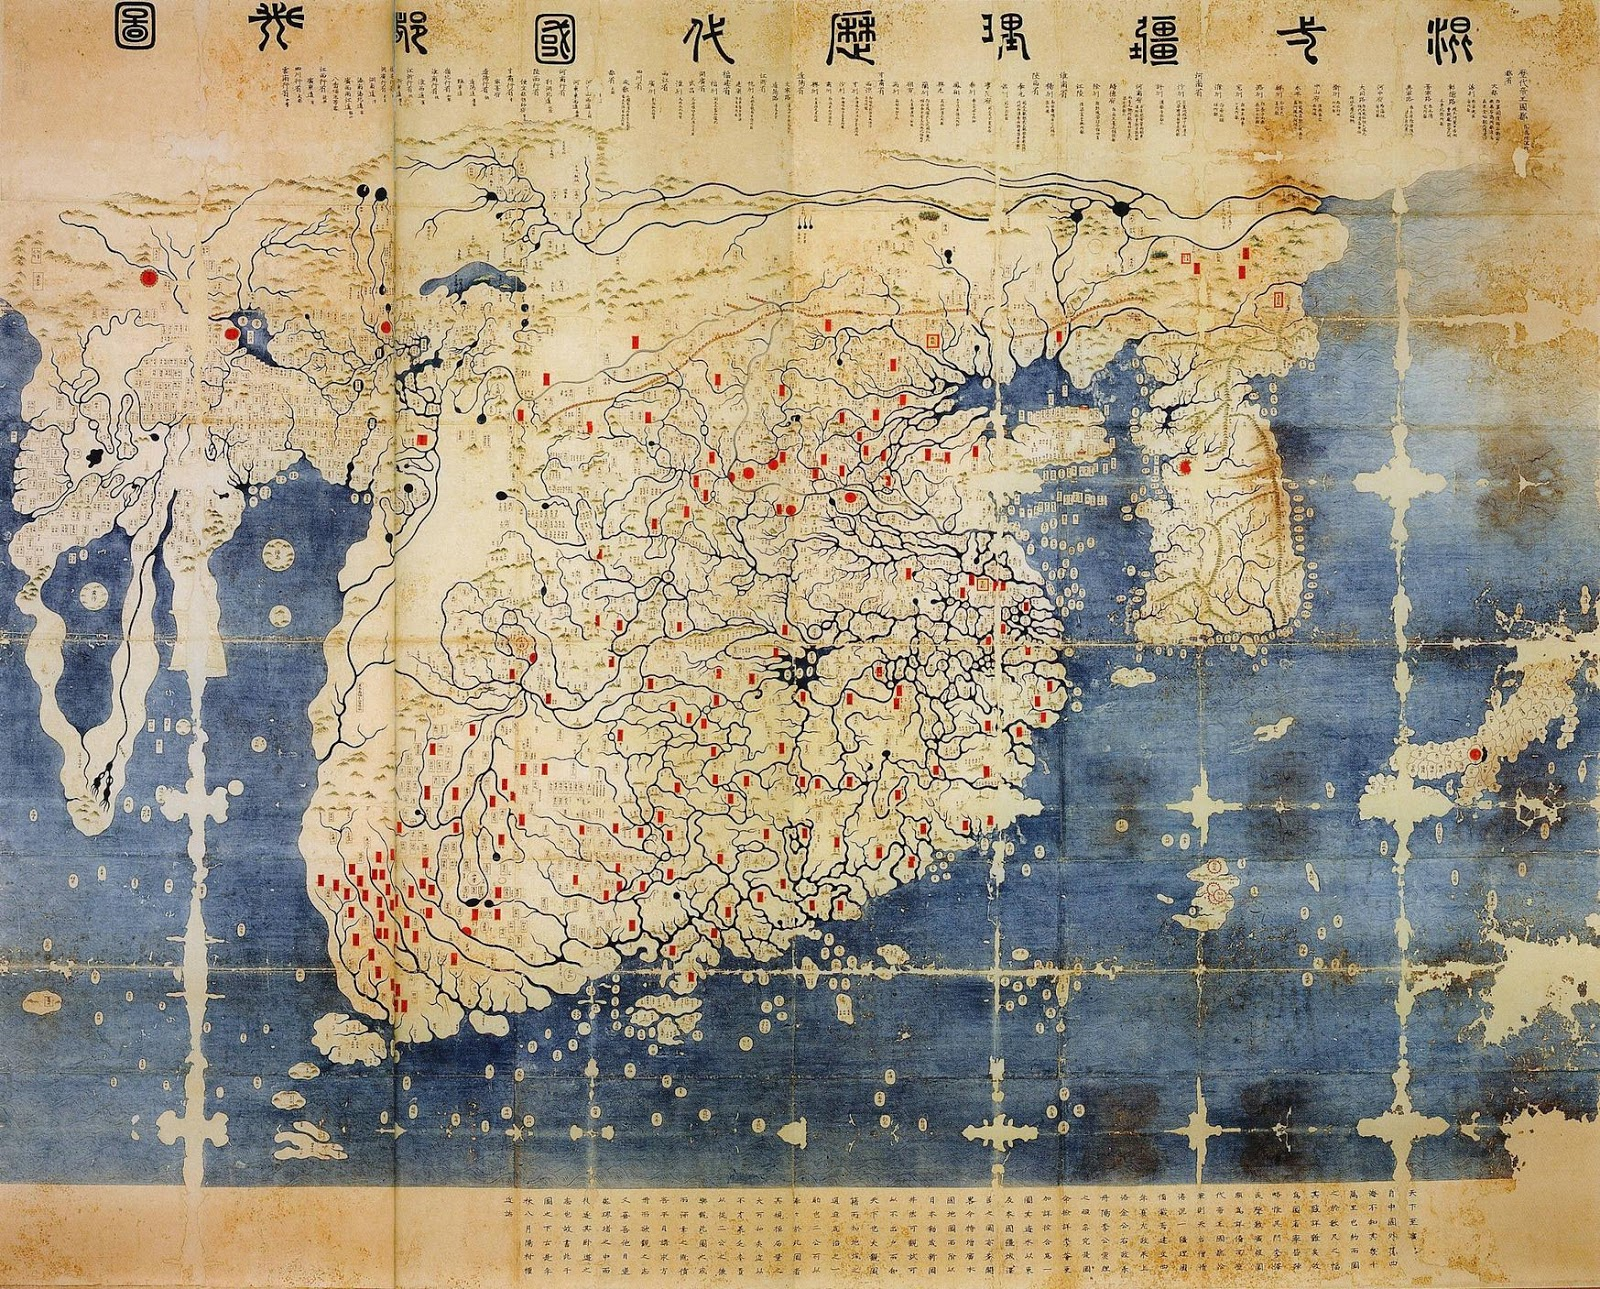 Worldmap from 1402 made in Korea